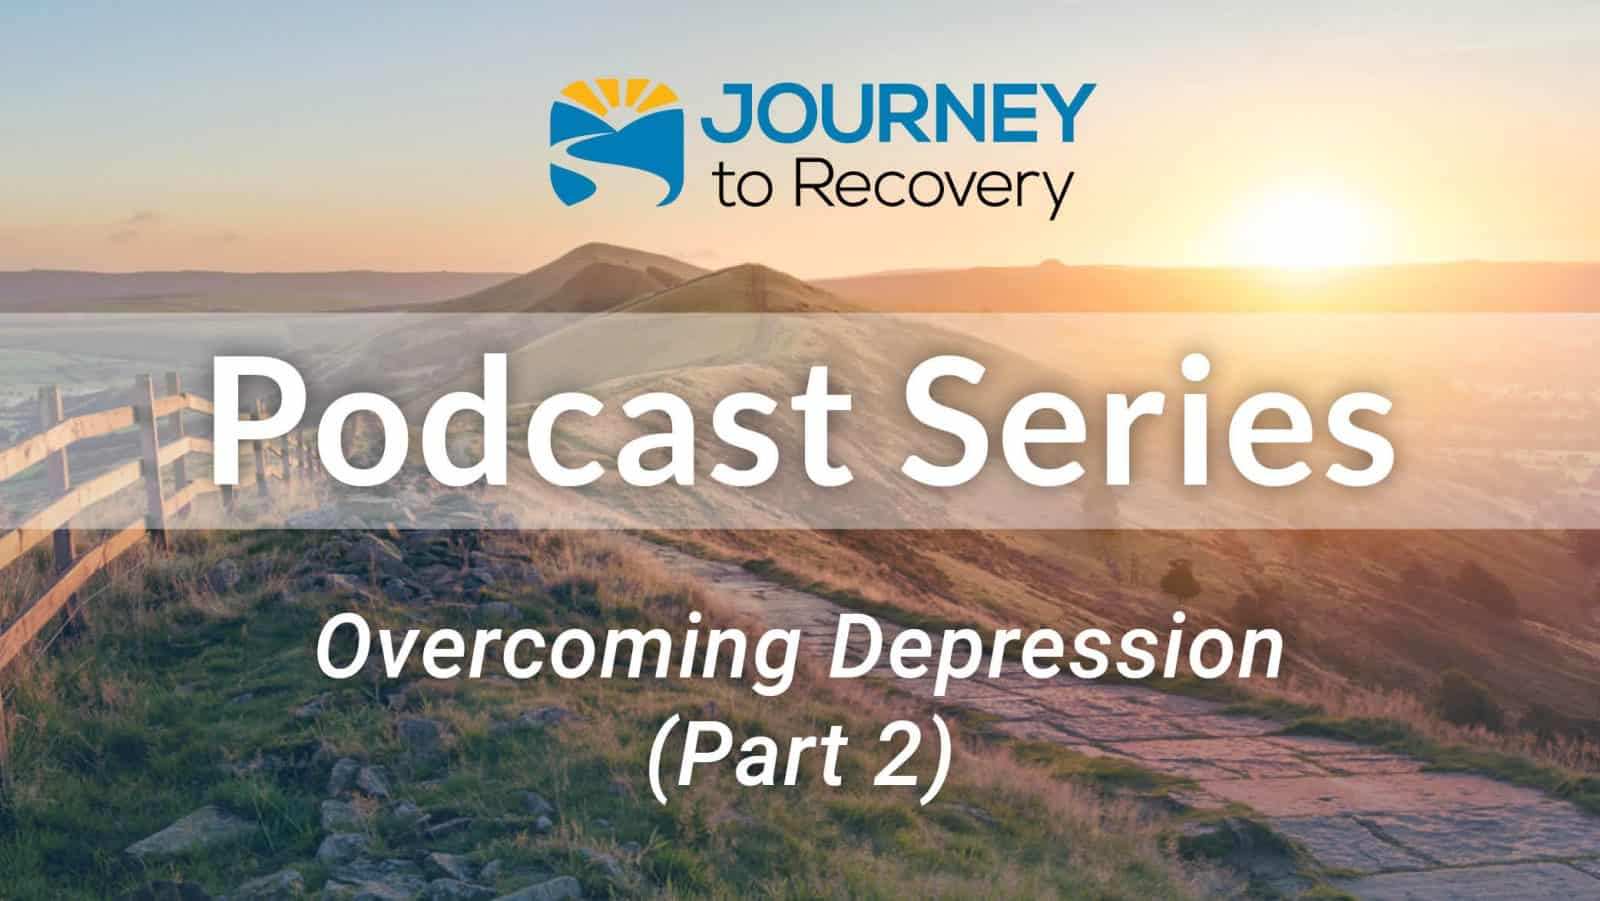 Overcoming Depression (Part 2)